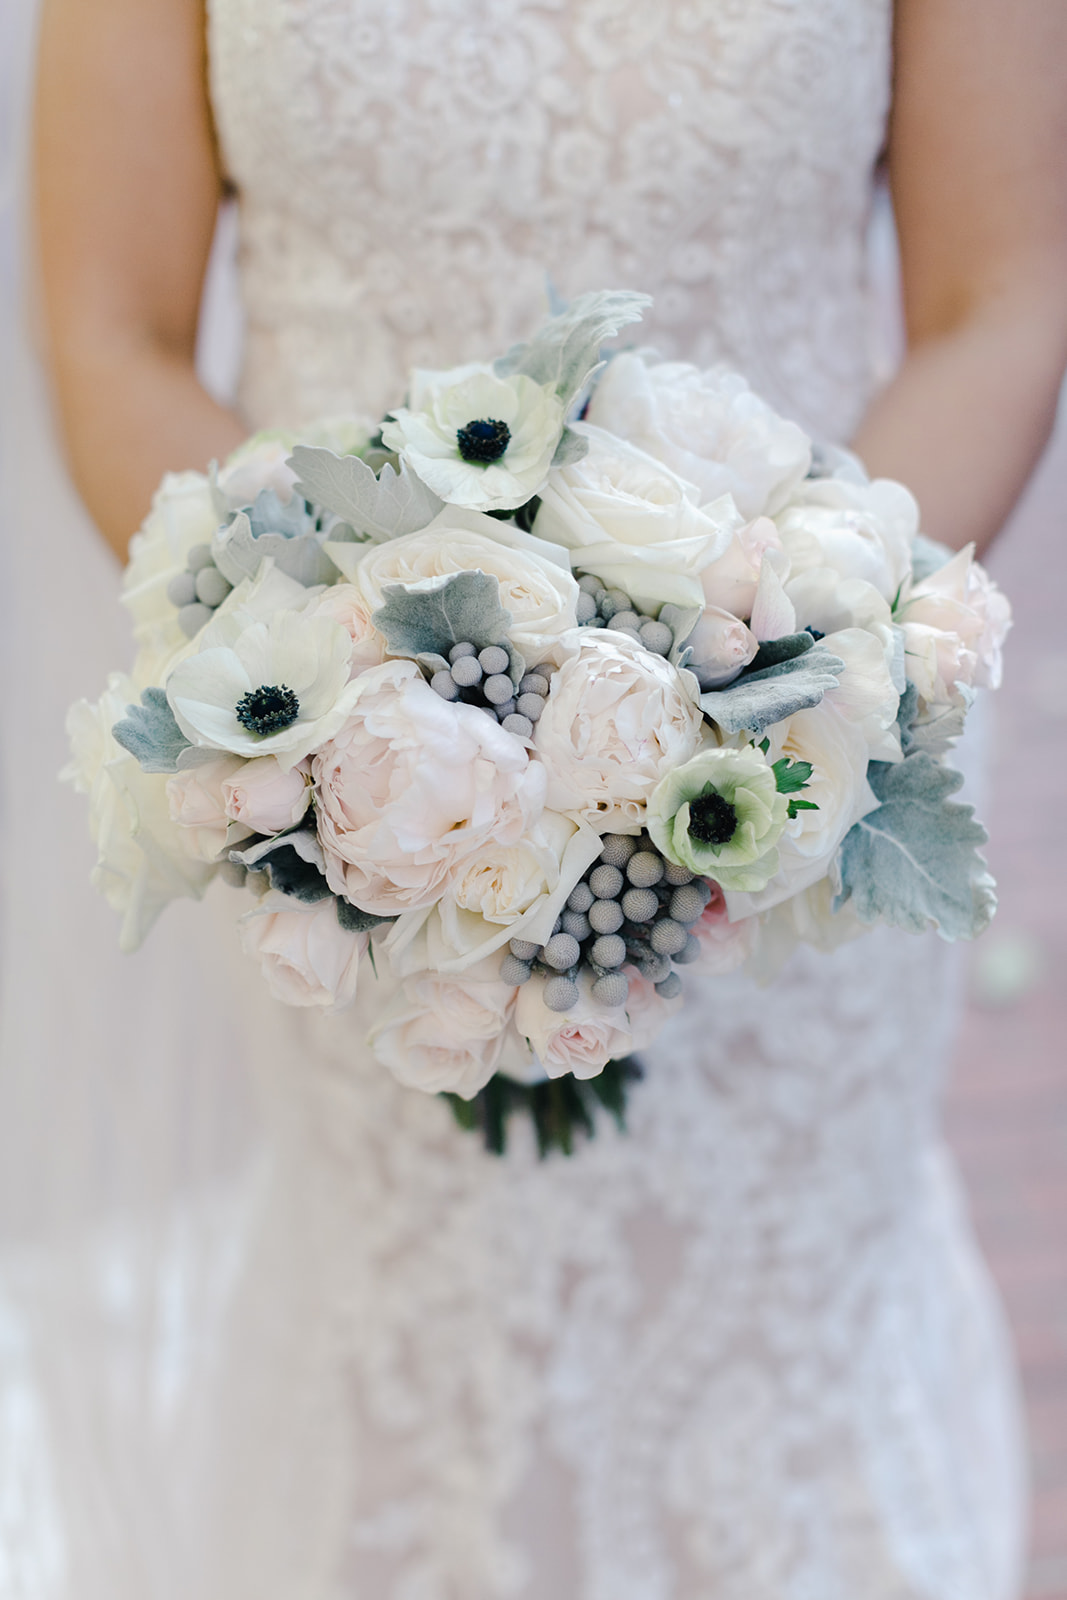 Blush white and gray bouquet by B Floral